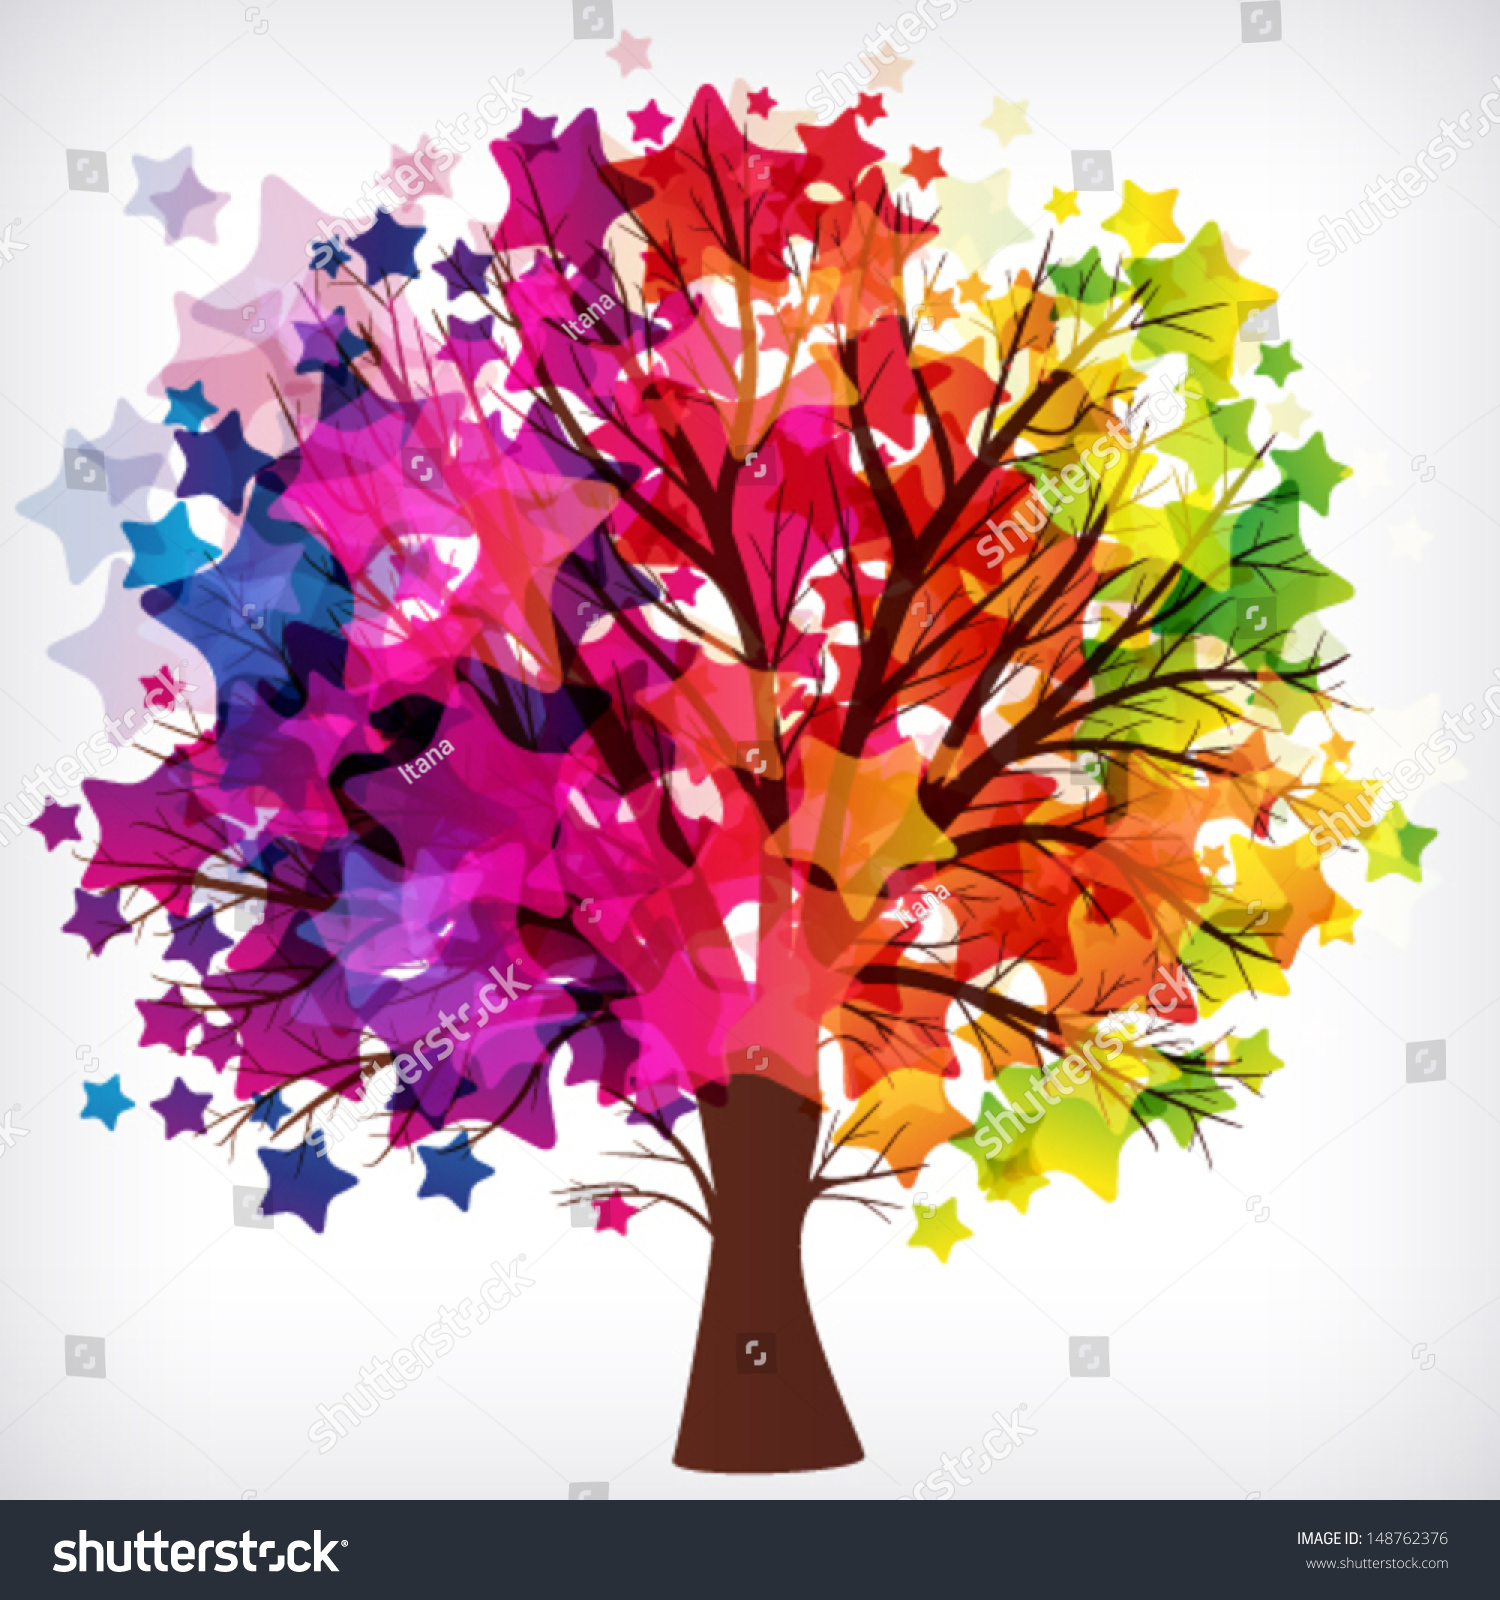 abstract background tree branches made colorful stock